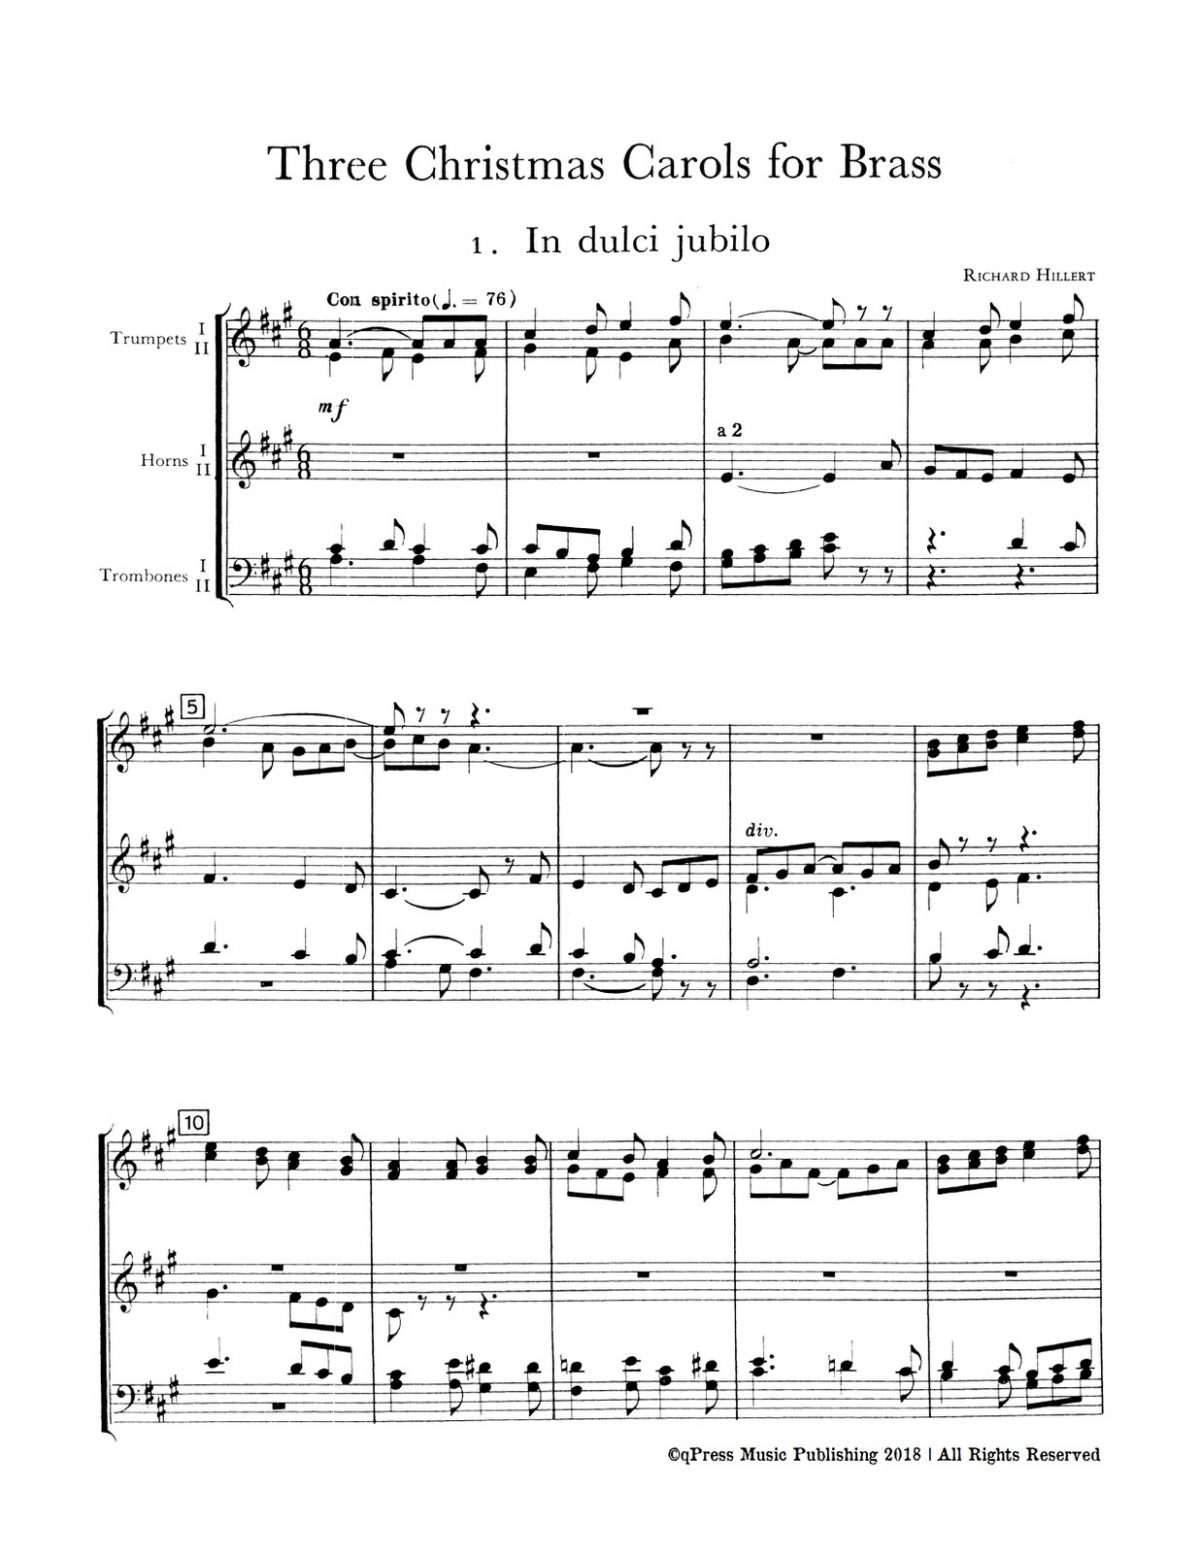 Hillert, Three Christmas Carols for Brass (Score and Parts)-p02